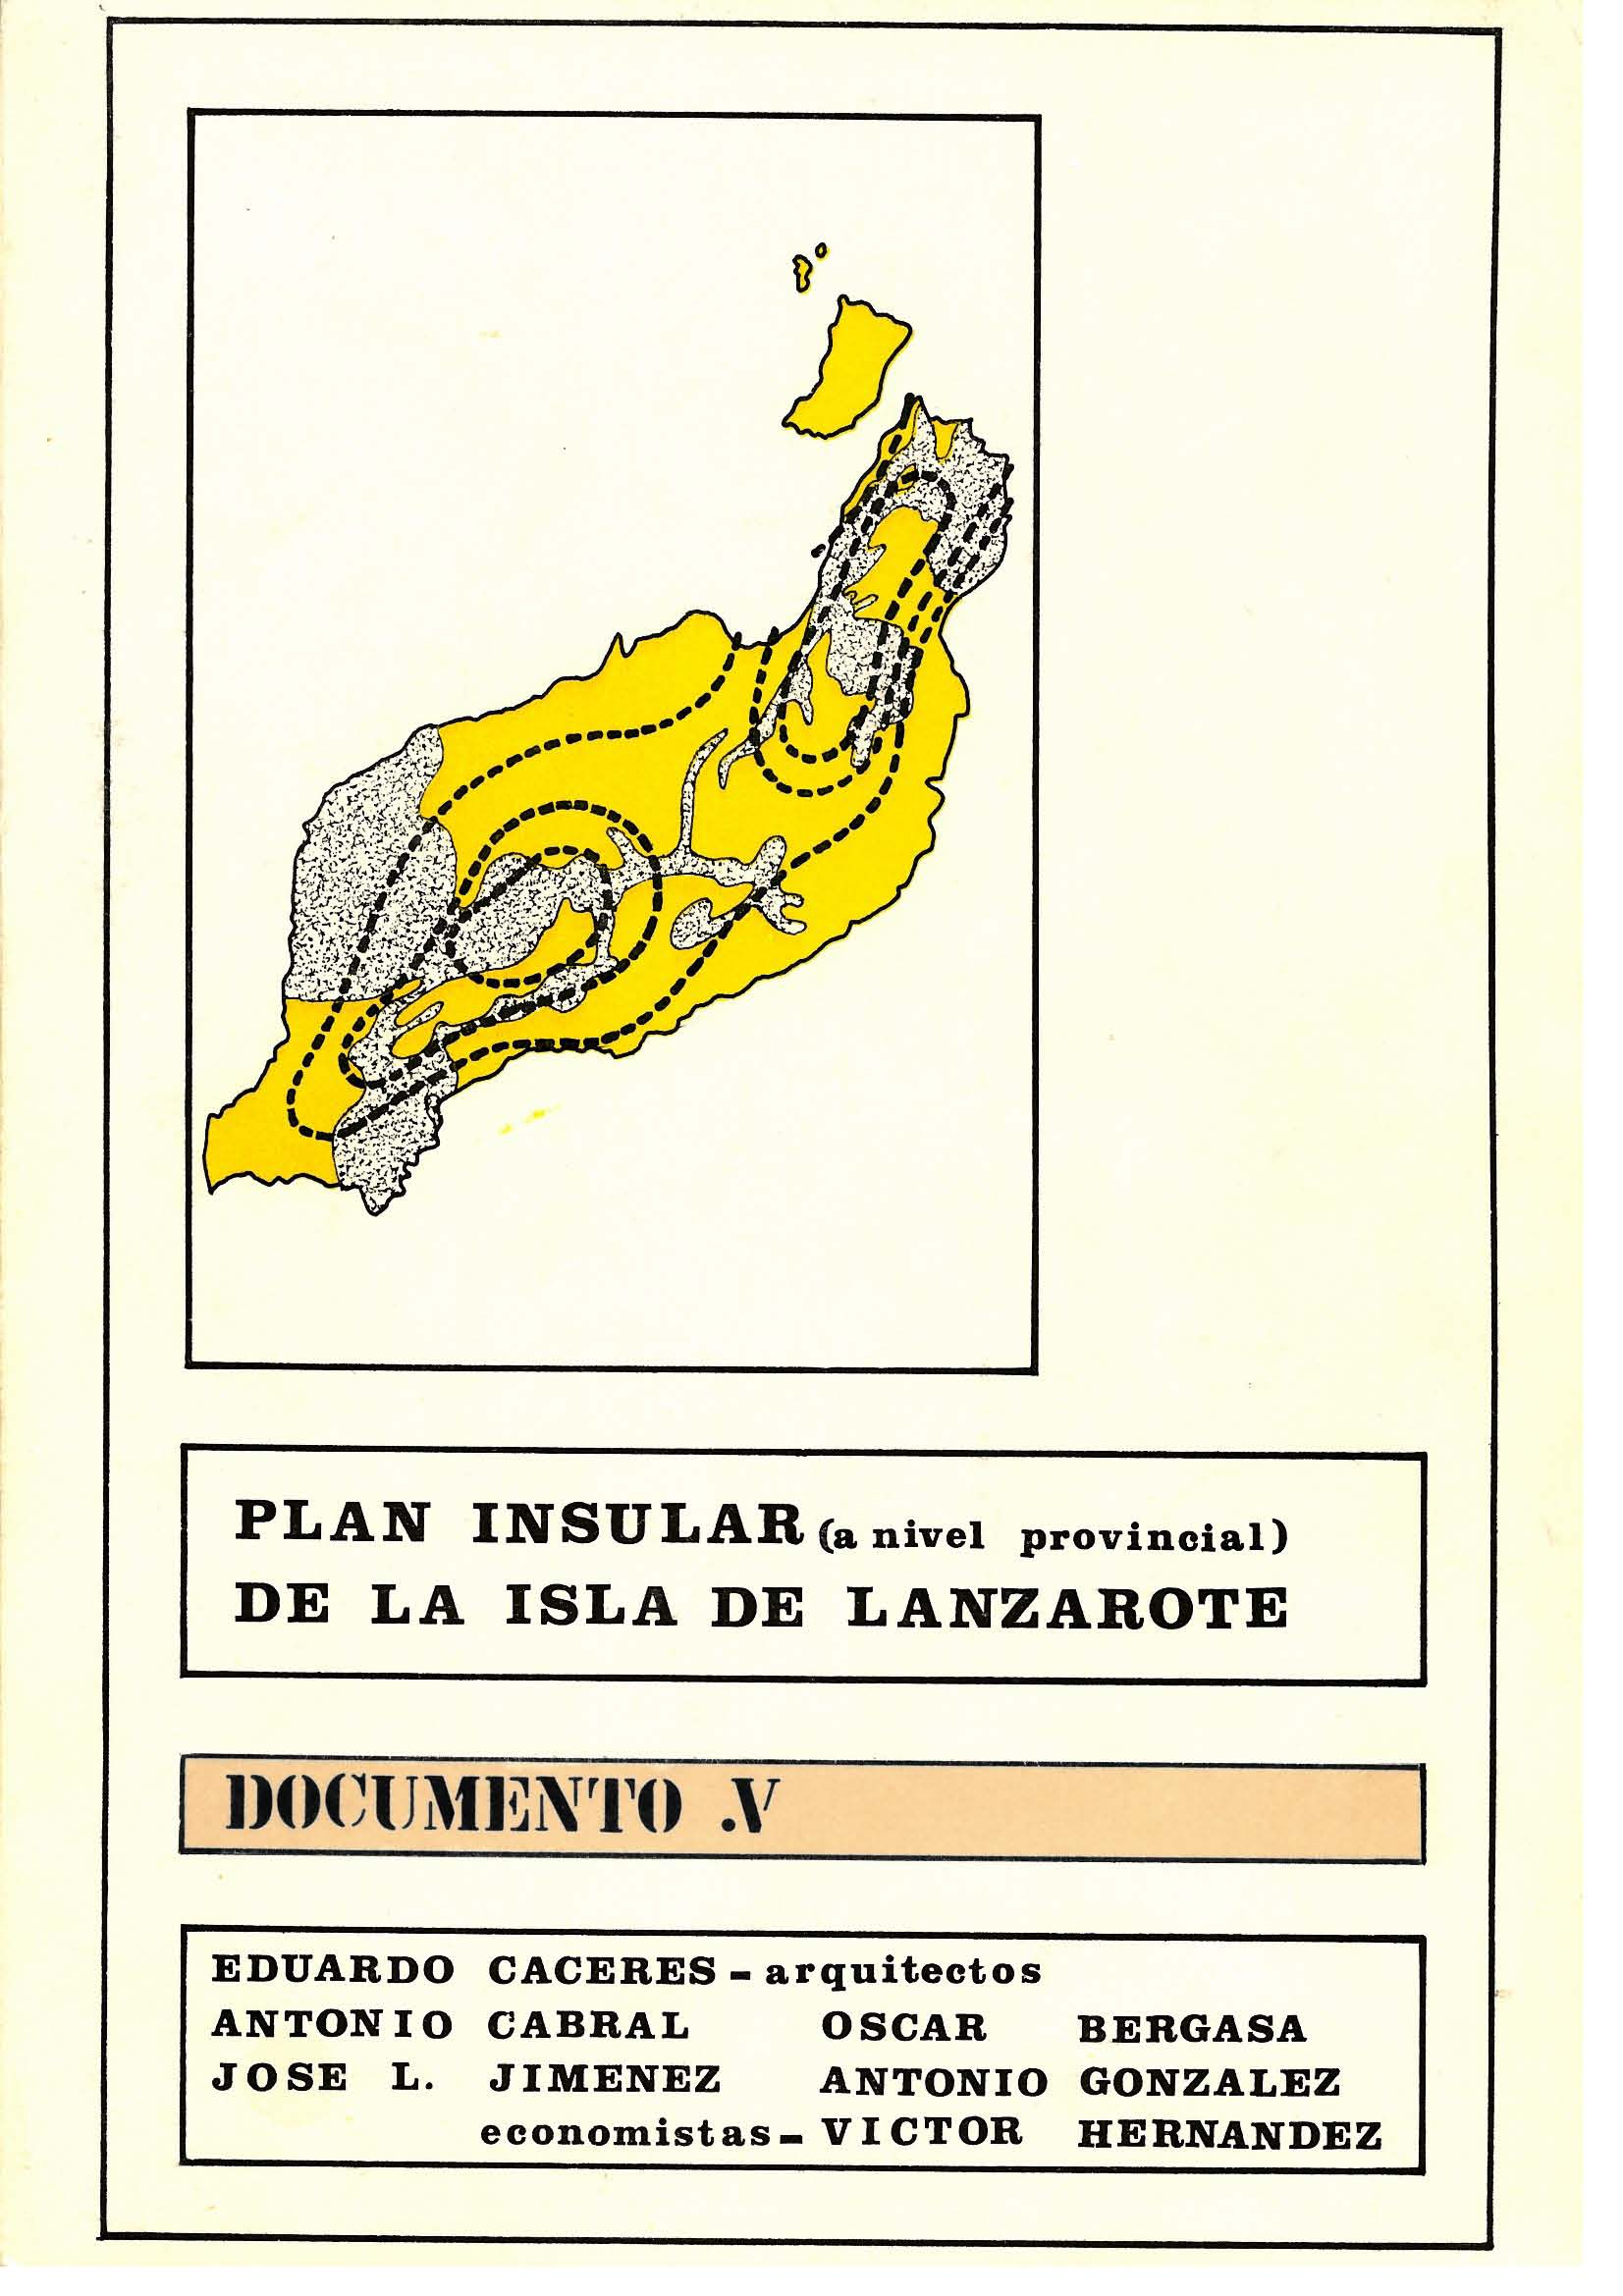 Documento V (Plan de 1973): Normativa